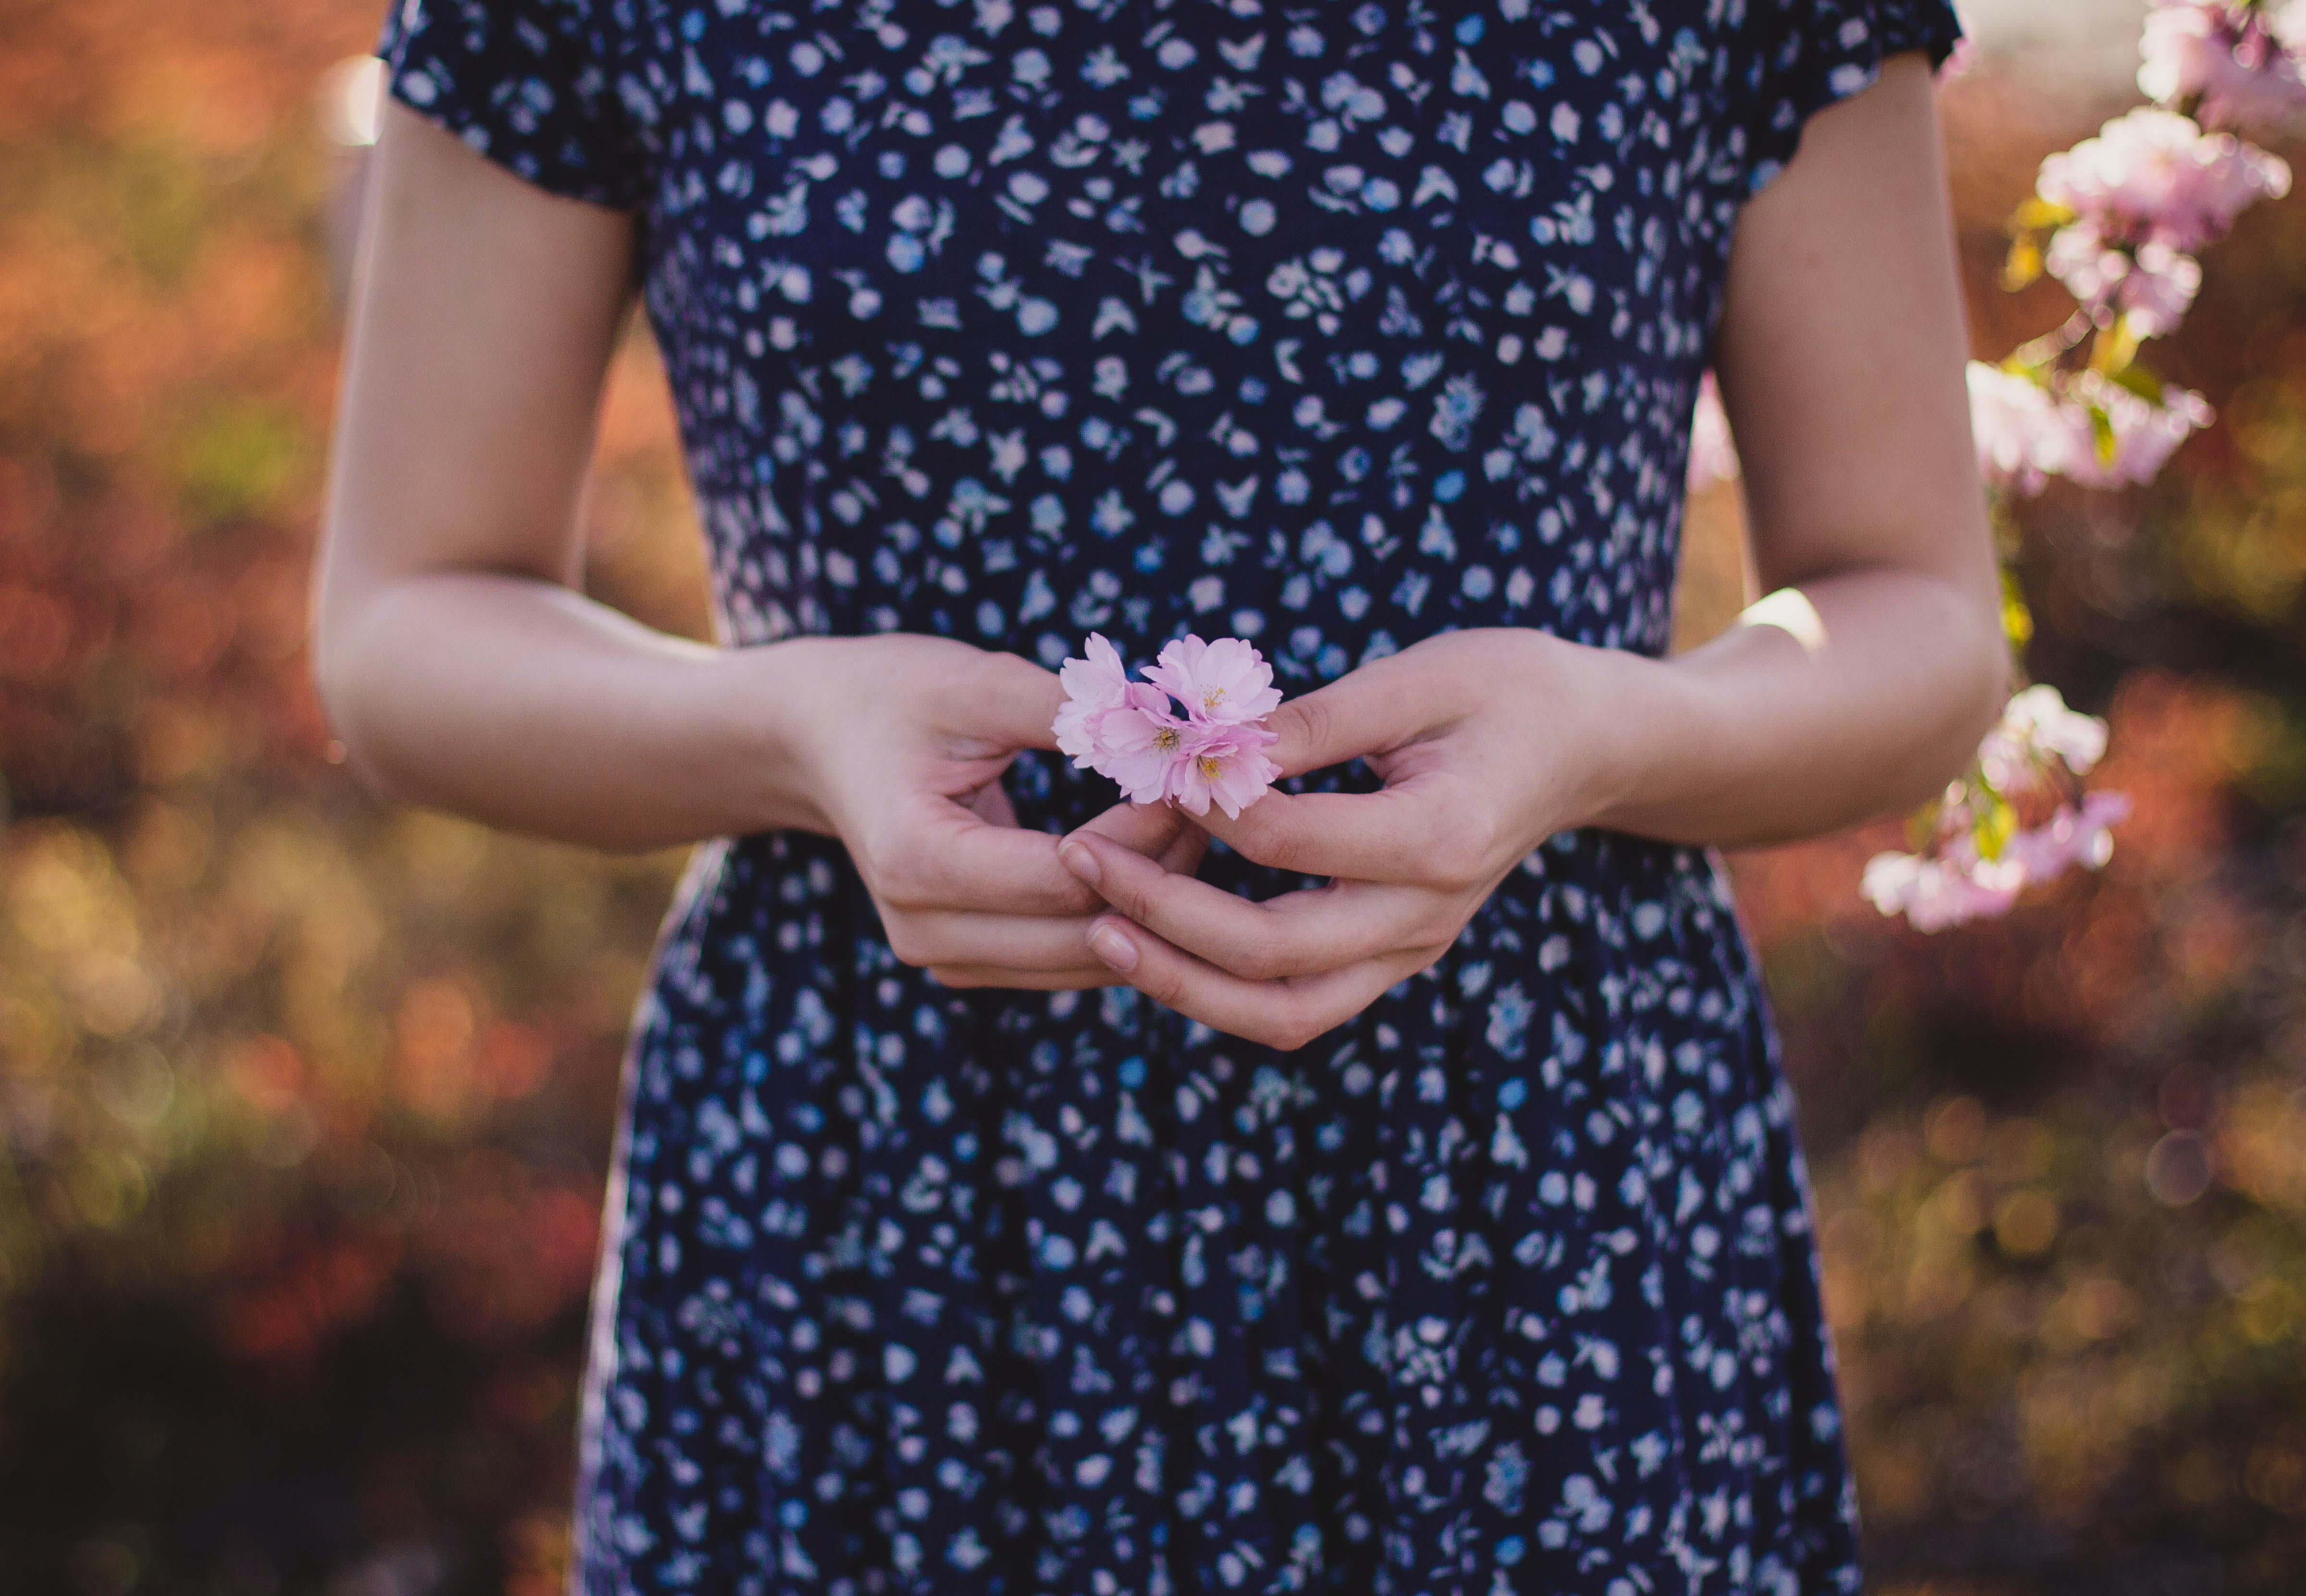 Women in Blue and White Floral Dress With Pink Flower on Hand